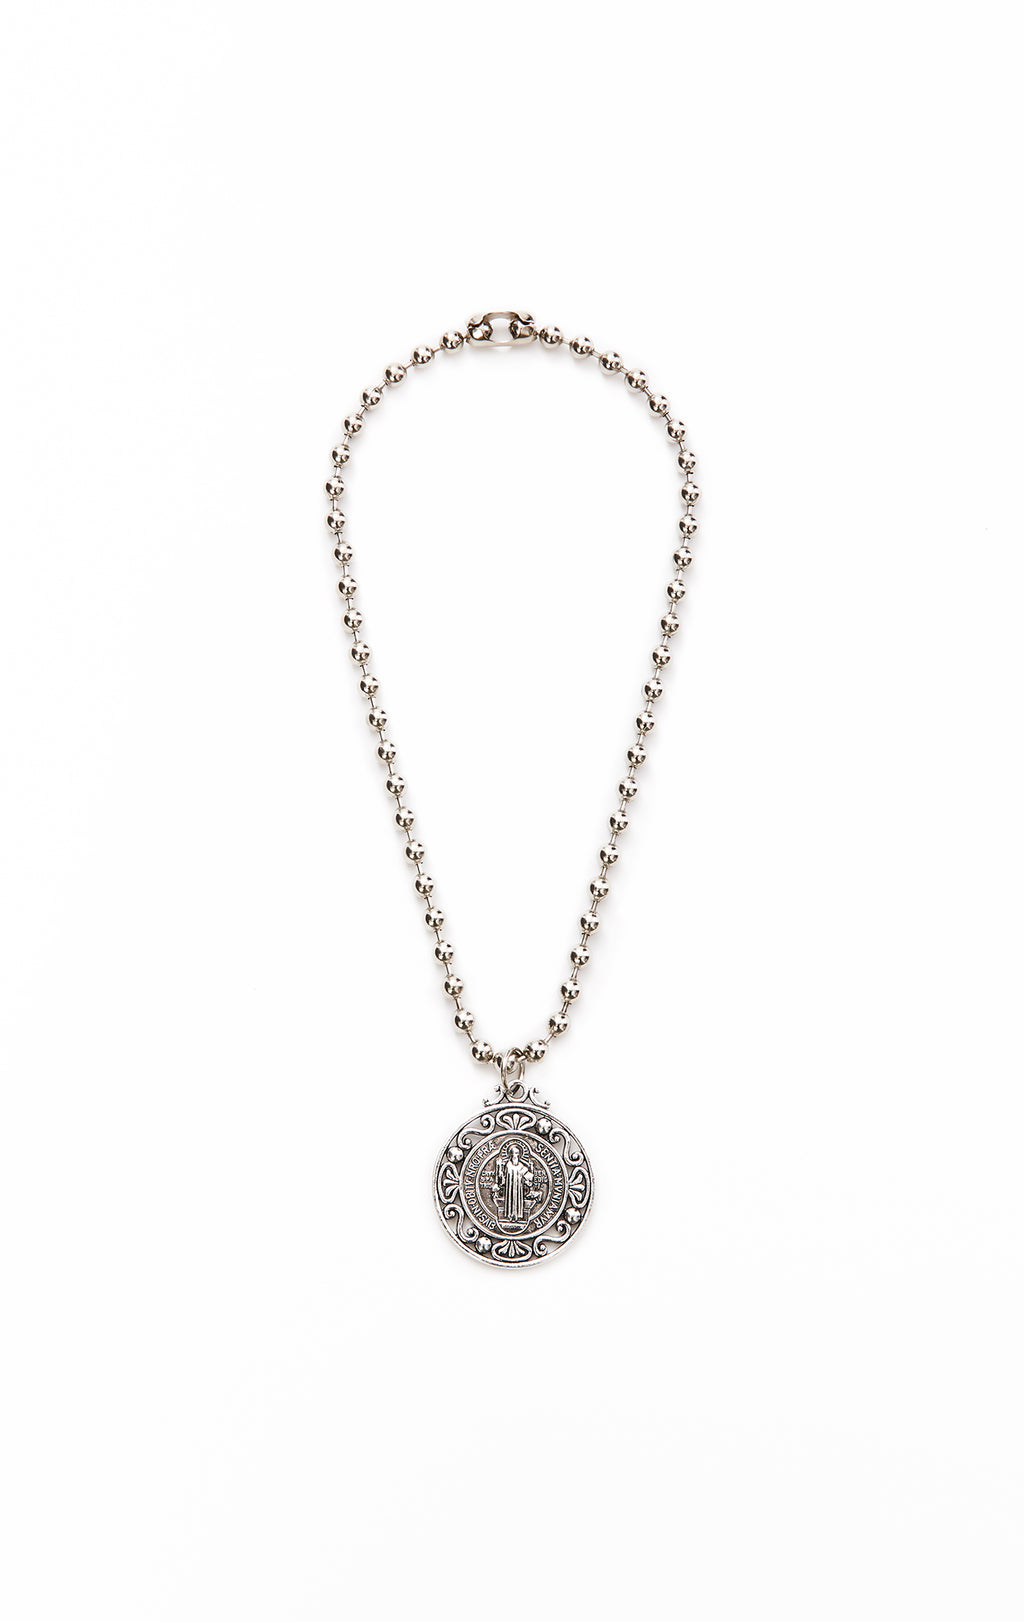 BALL CHAIN WITH LARGE BENEDICT CHARM